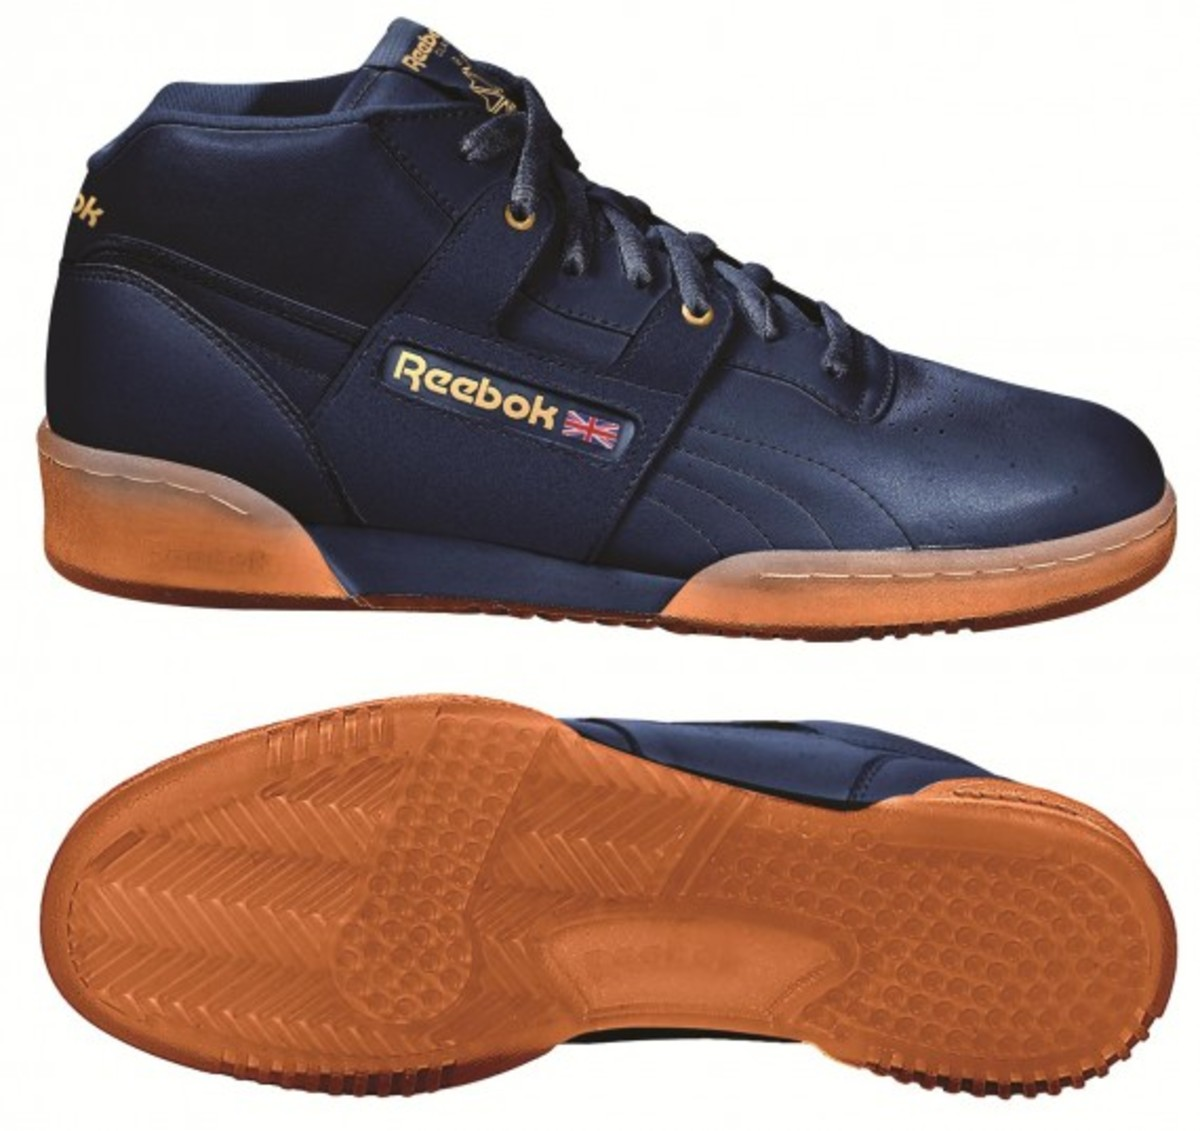 ec8987b8a217 Buy black reebok classics with gum bottom   OFF64% Discounted